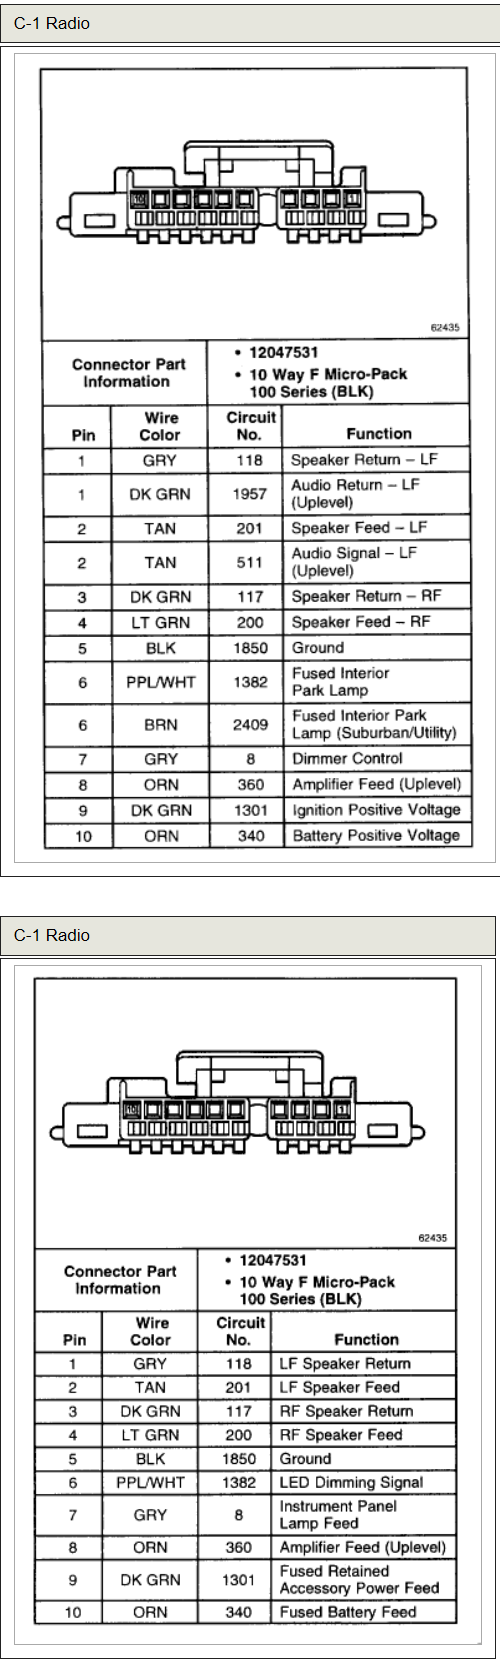 1988 Chevy S10 Ignition Switch Wiring Diagram Chevrolet Car Radio Stereo Audio Autoradio Connector Wire Installation Schematic Schema Esquema De Conexiones Anschlusskammern Konektor